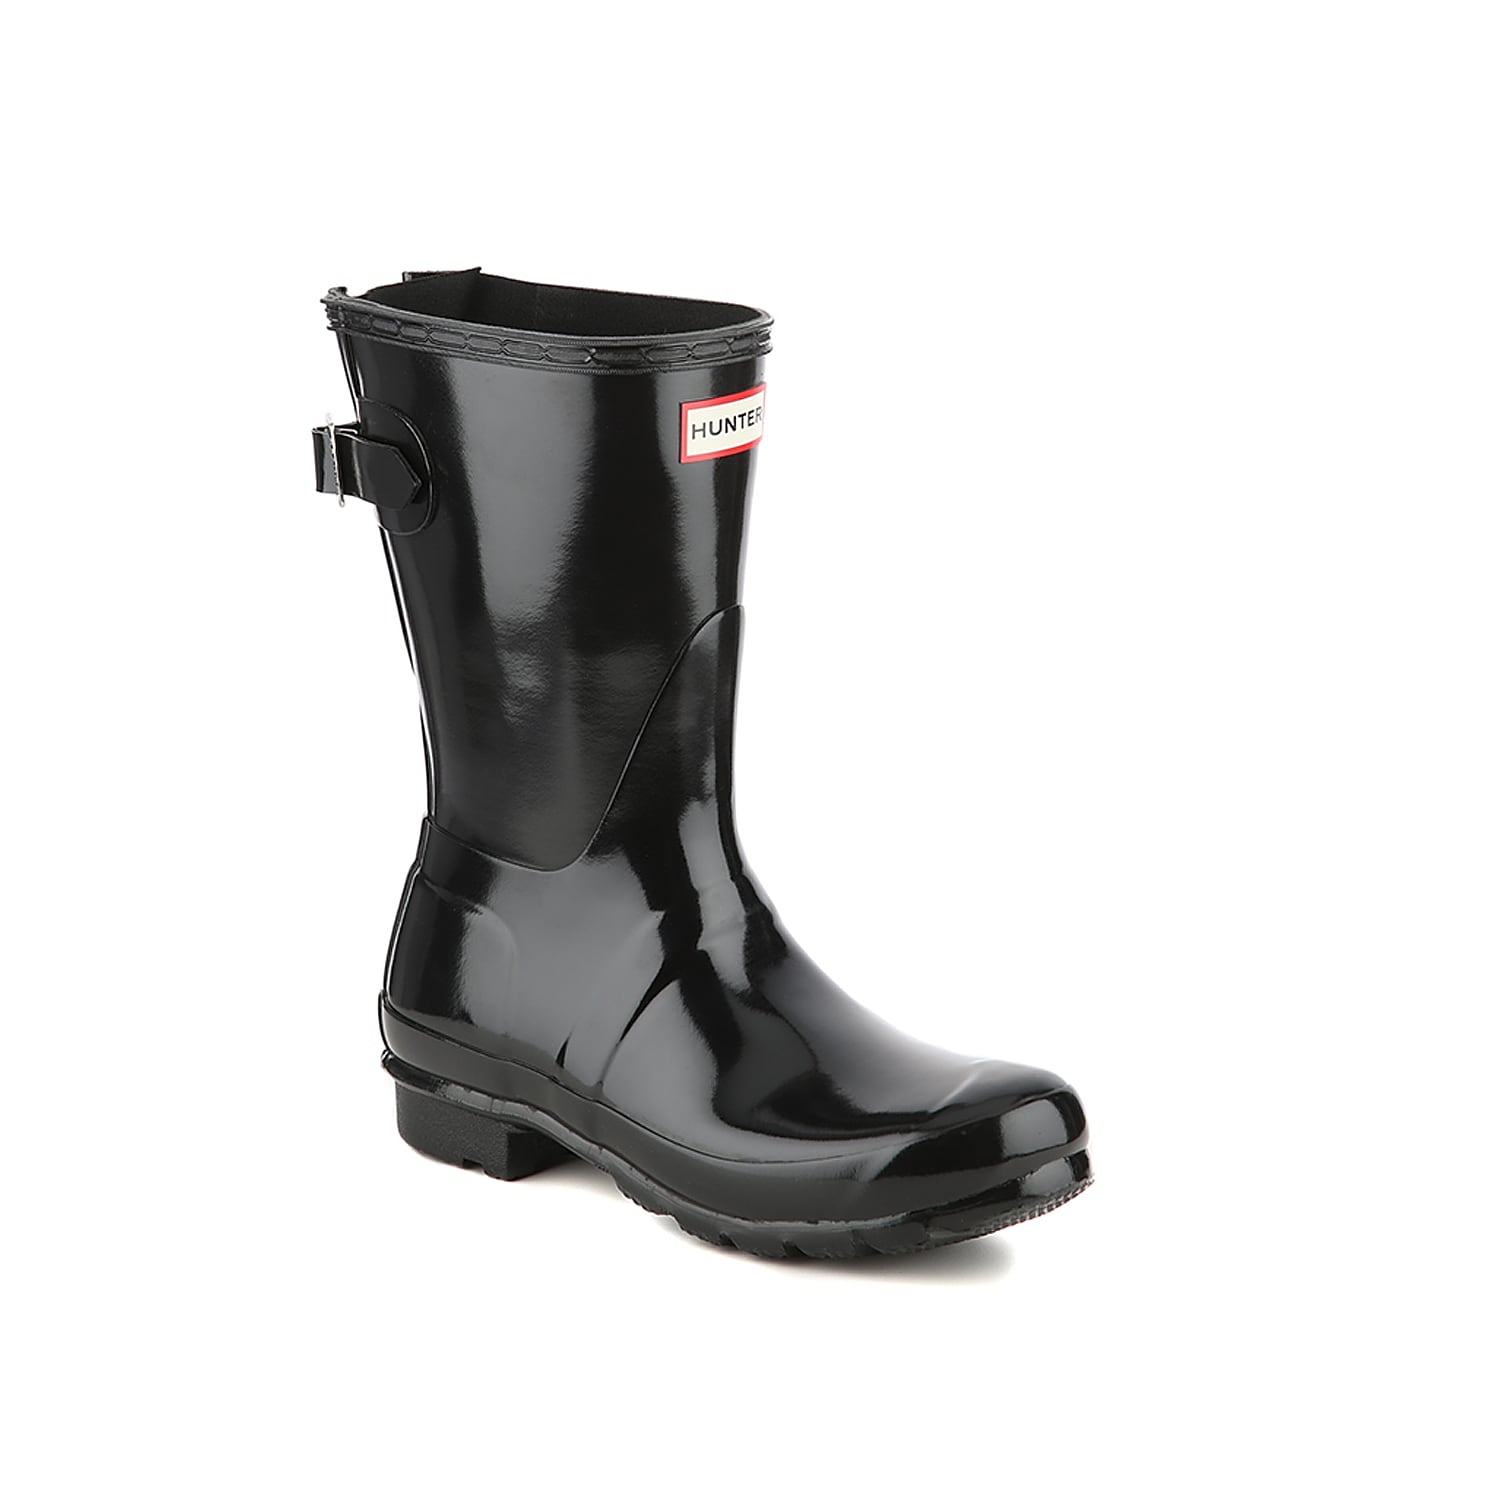 Splash around in the Hunter Original Short Gloss rain boot. These wellies feature an adjustable back gusset to help you perfect the fit, allowing you to rock this waterproof pair with jeans and thick socks without a worry. Click here for Boot Measuring Guide.